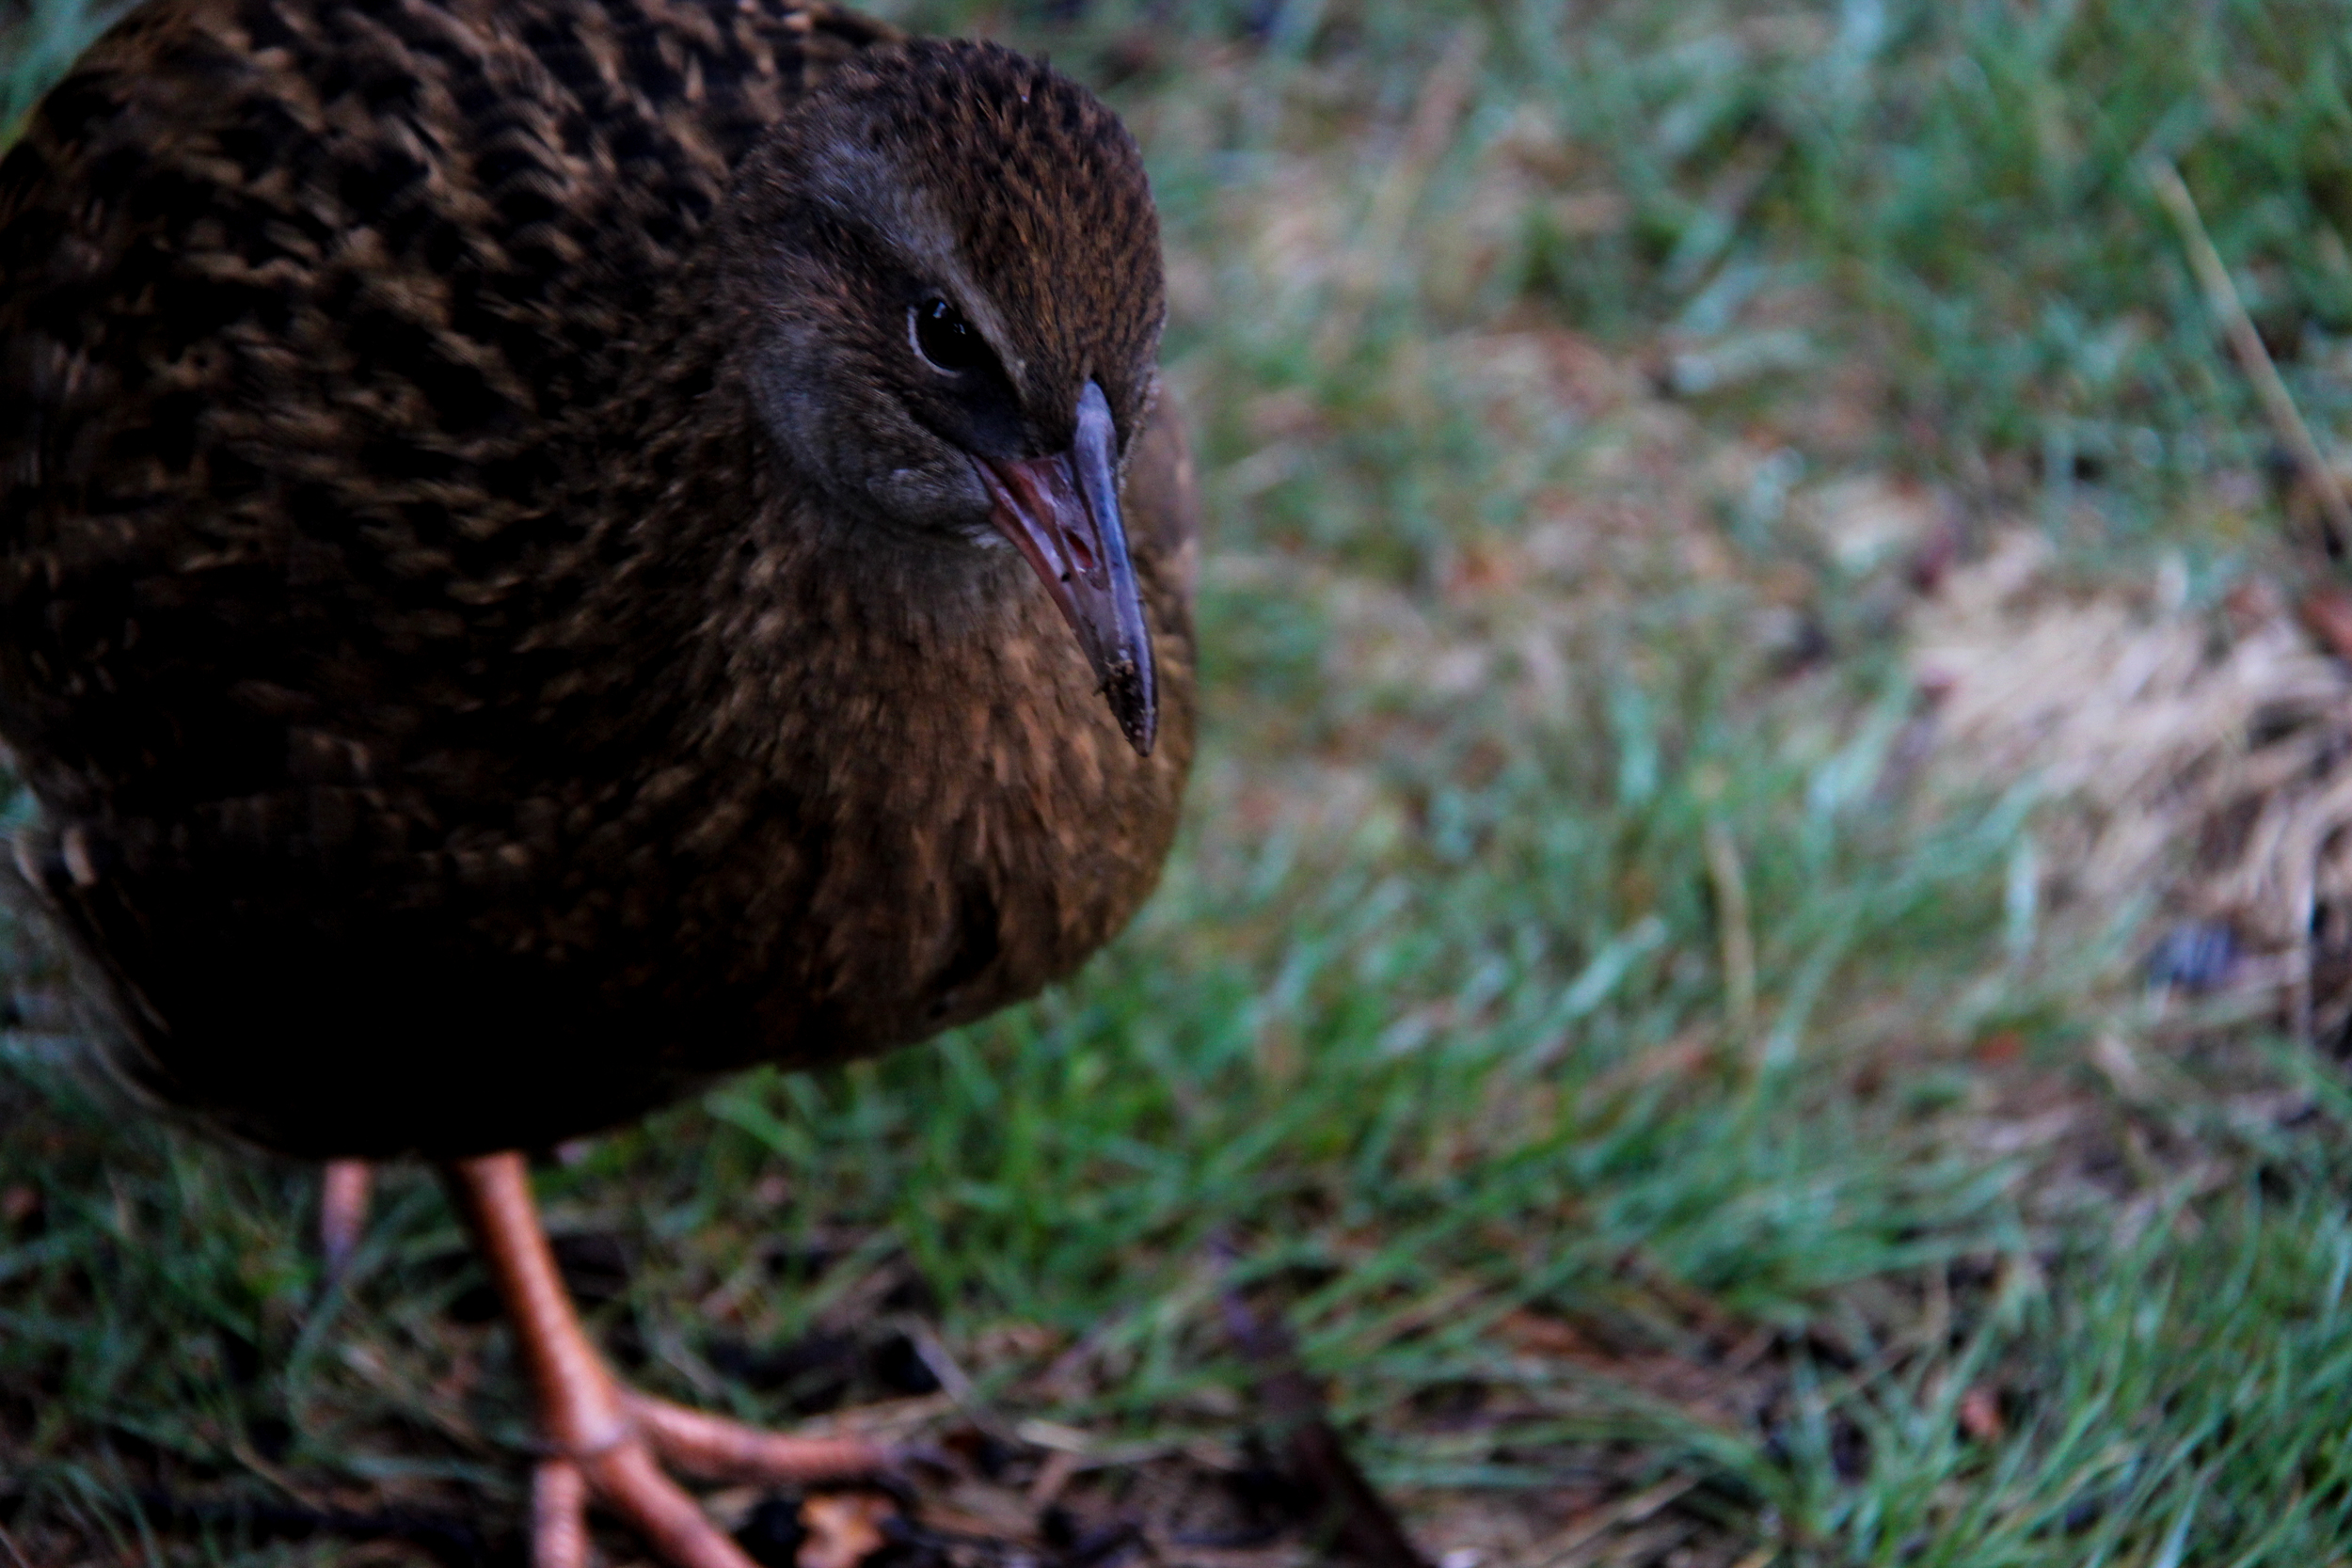 A weka searches for food scraps left around the hut by hikers. Wekas are flightless ground scavengers that are native to New Zealand.